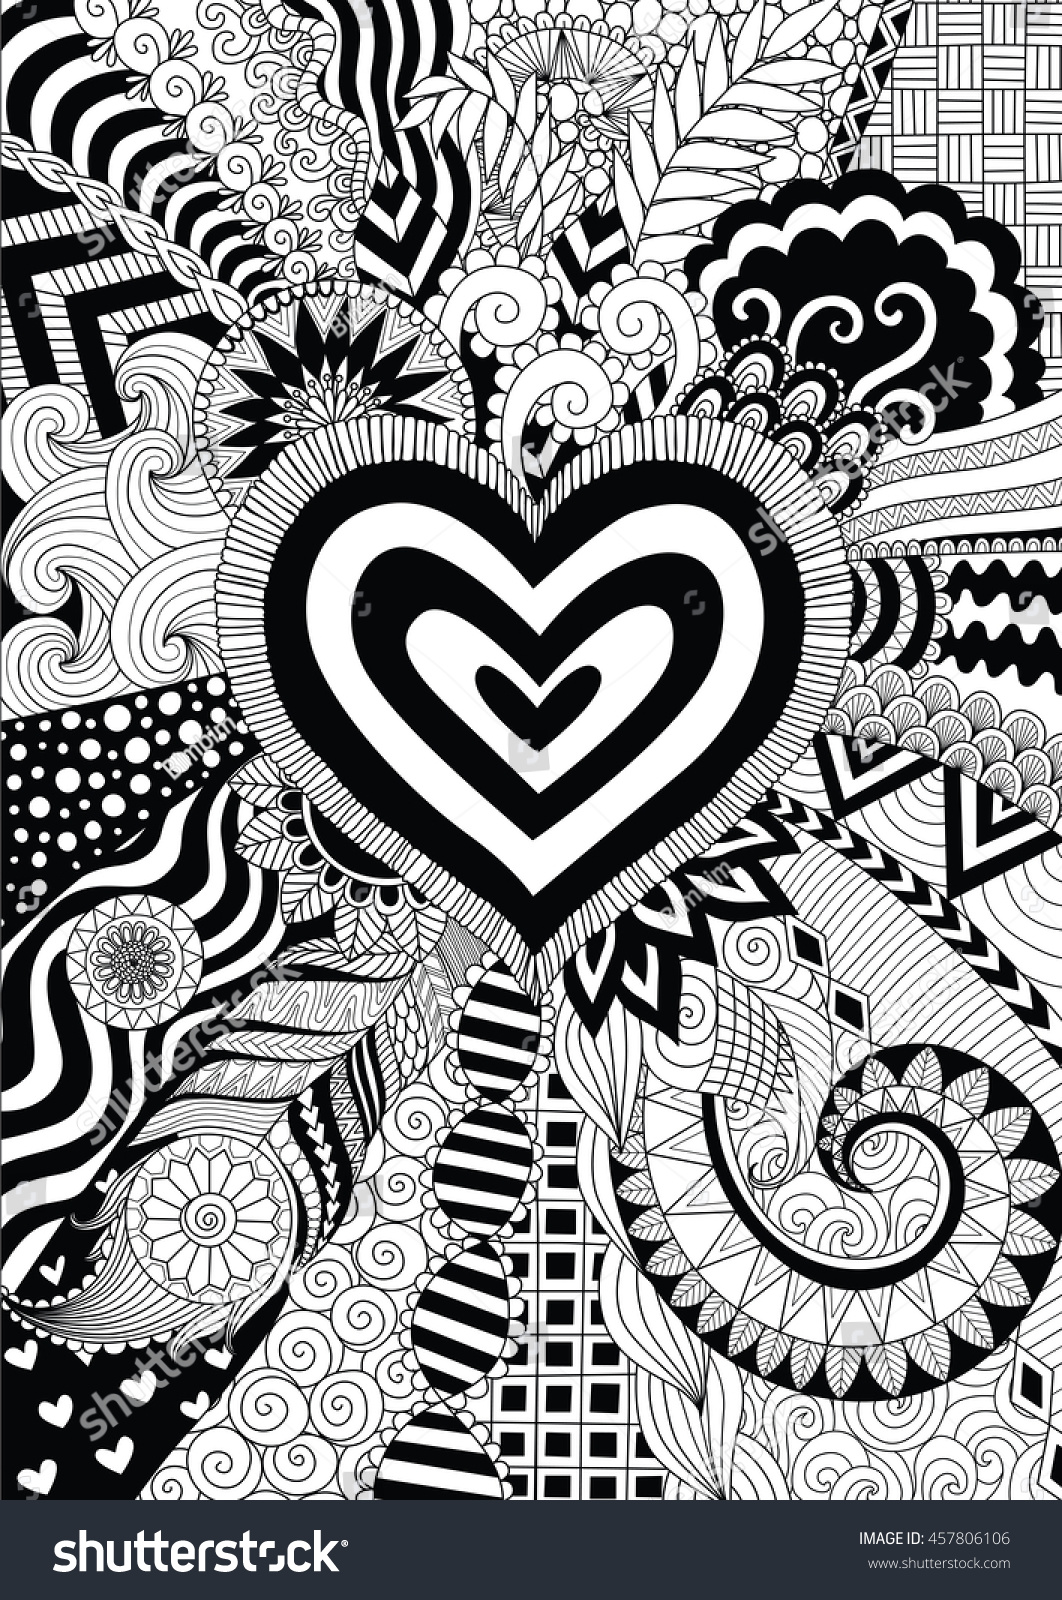 Line Art Card Design : Zendoodle design heart shape on abstract stock vector